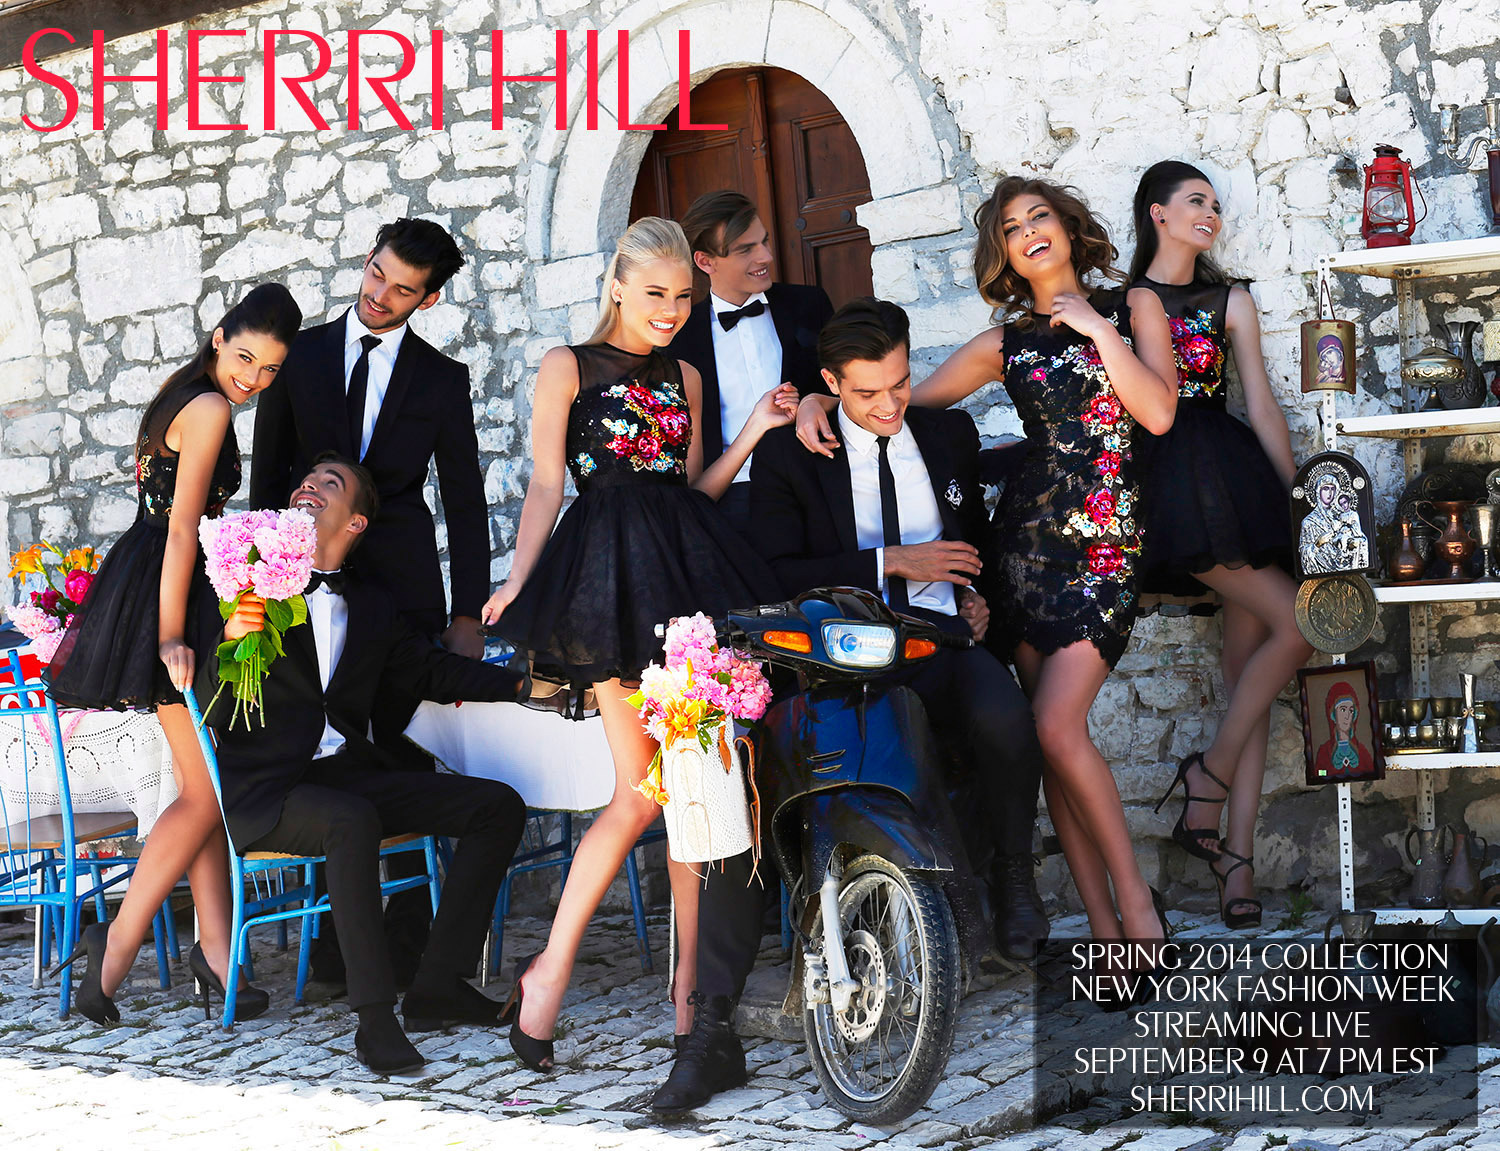 Sherri Hill's Spring Collection Hits Runway Next Week